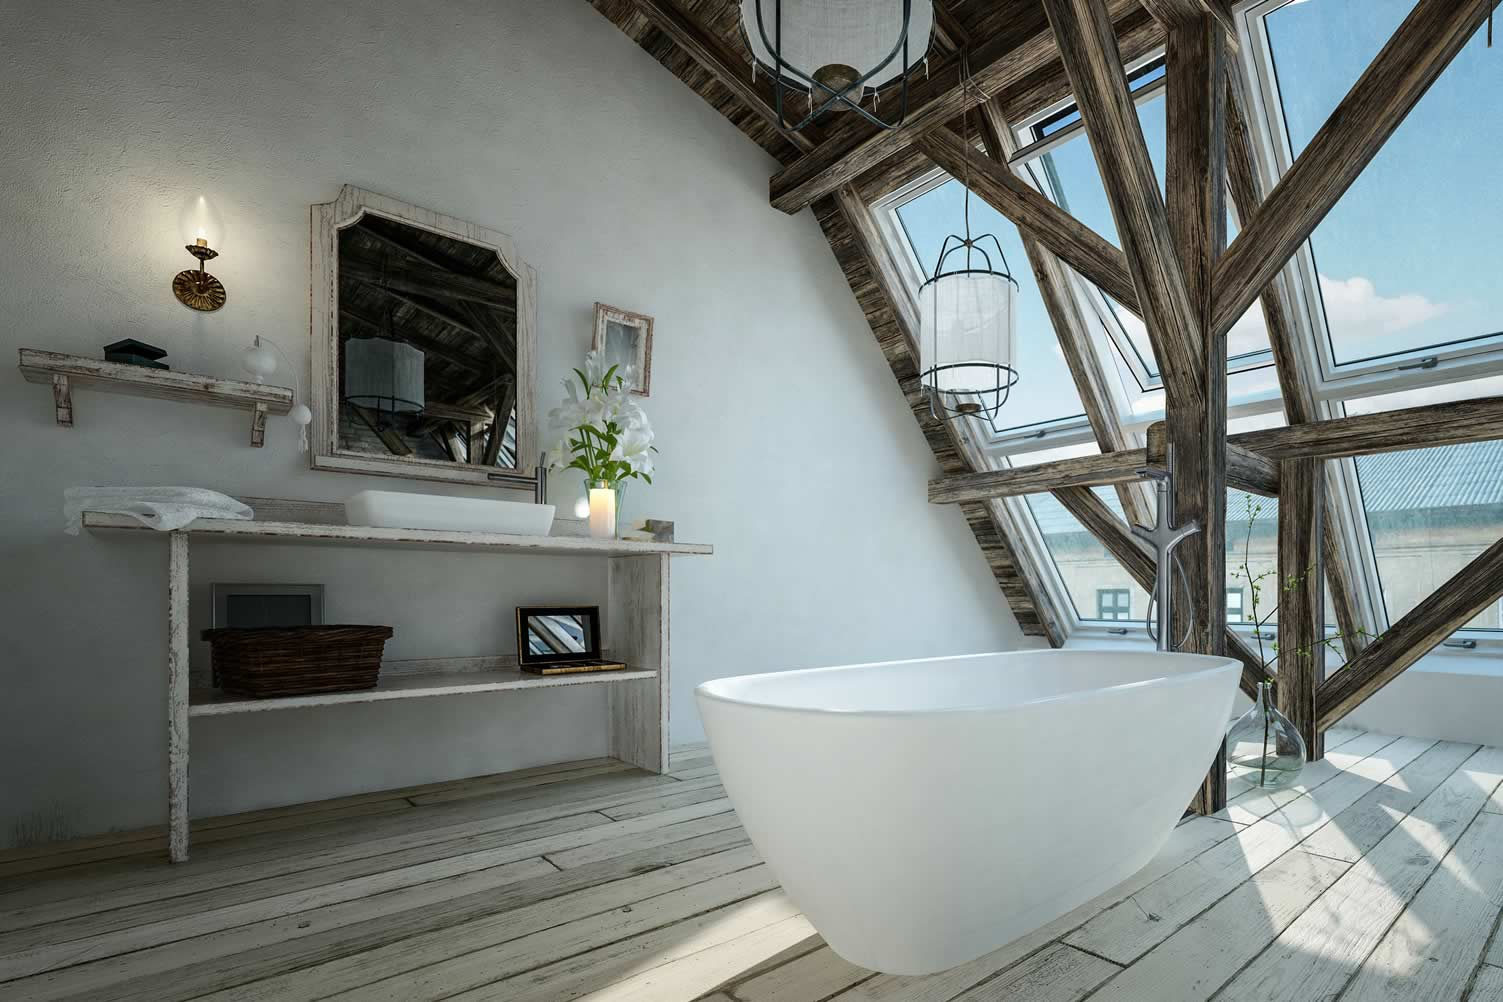 secluded attic bathroom